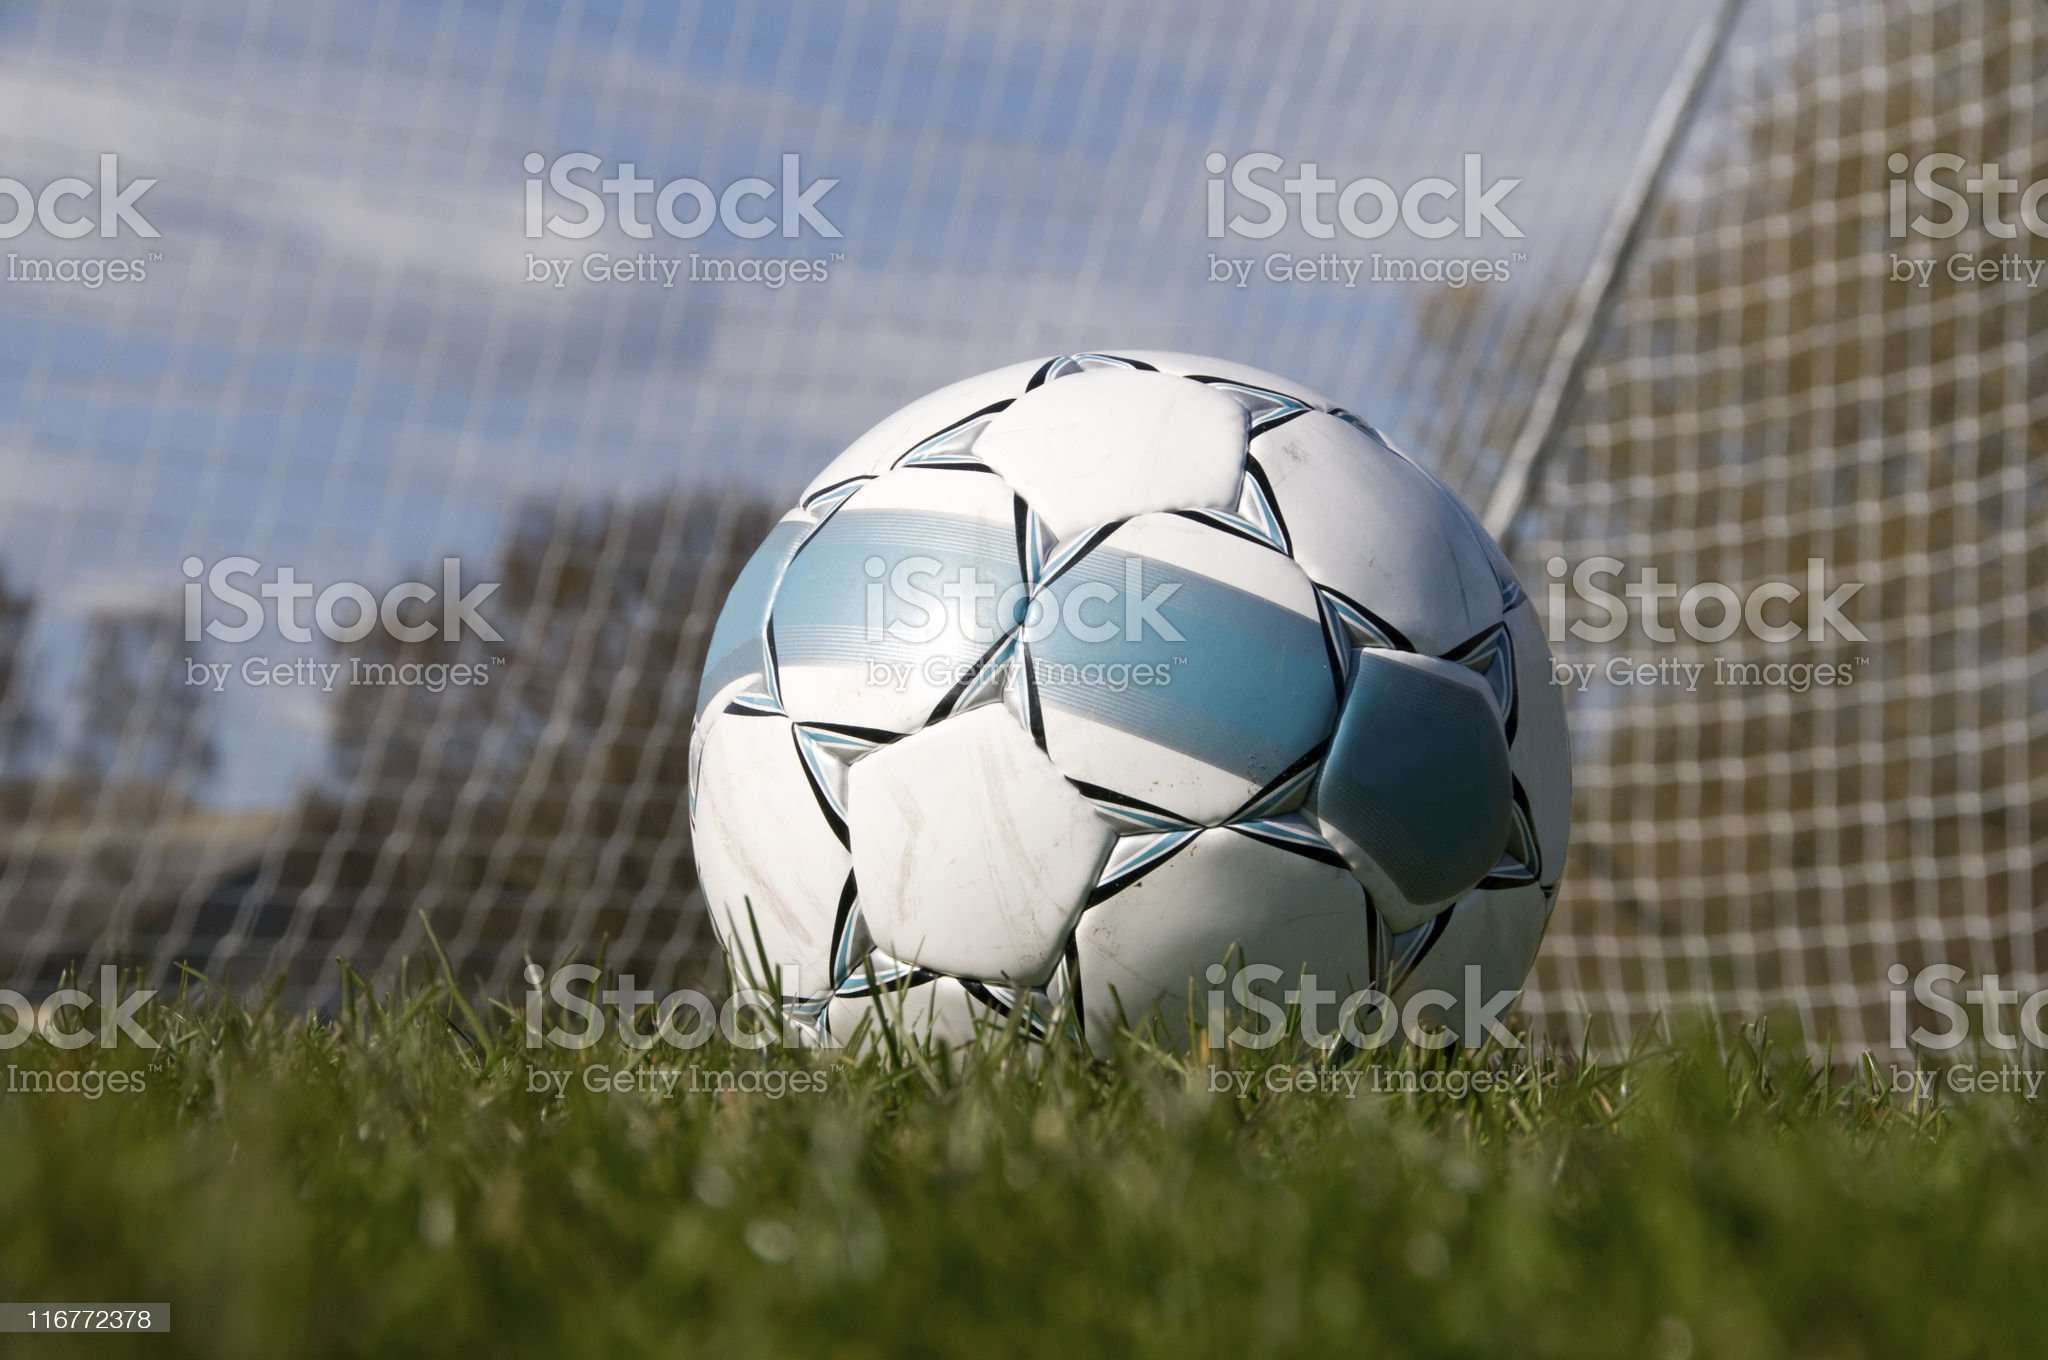 Soccerball in fron of an empty goal royalty-free stock photo